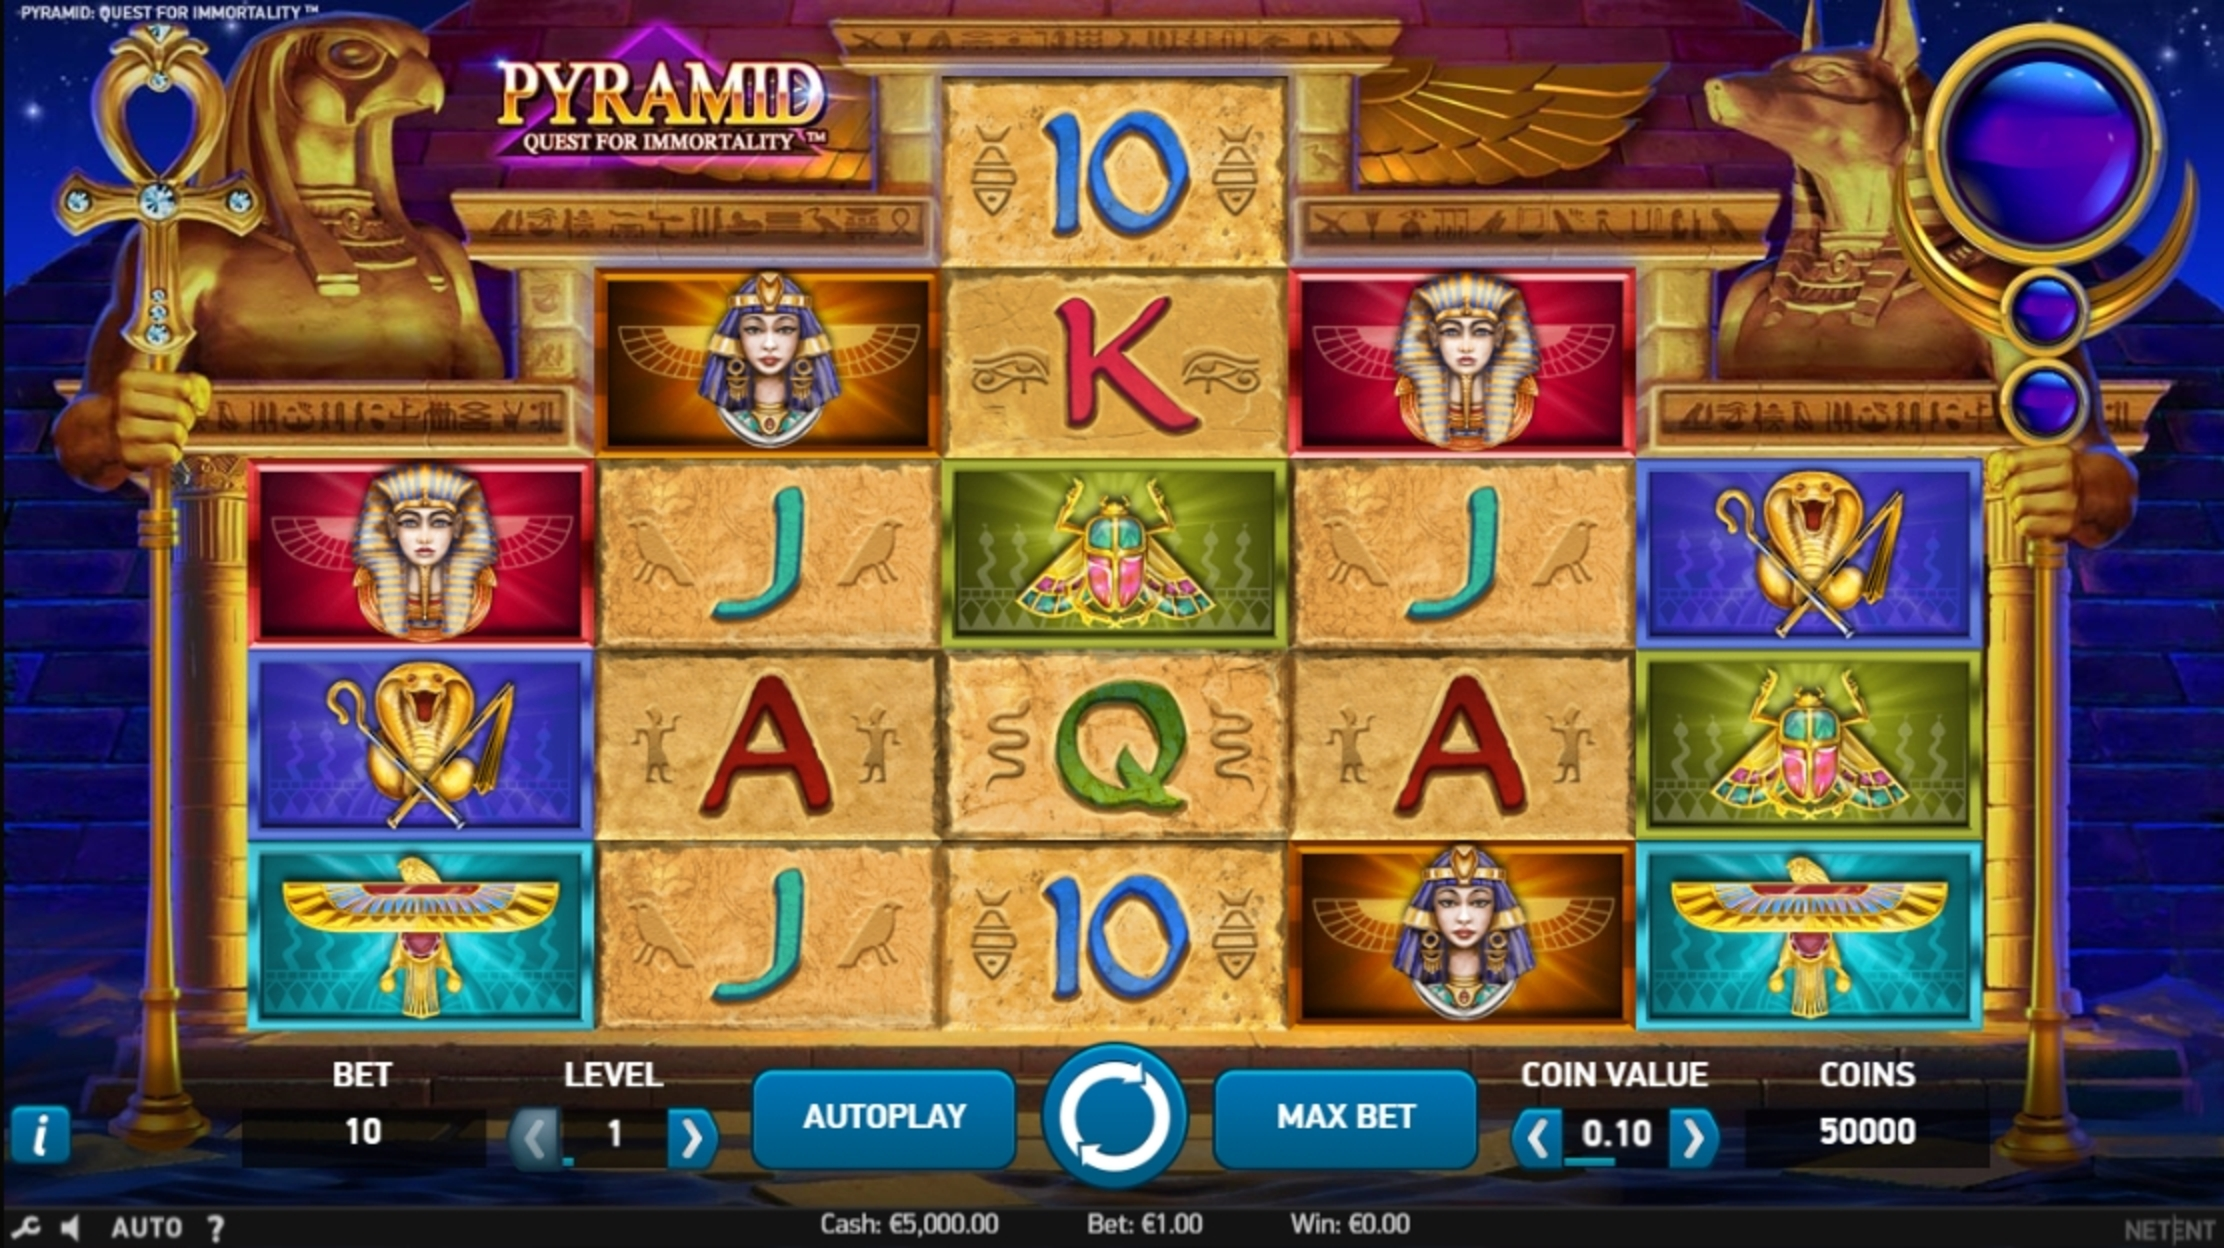 Reels in Pyramid: Quest for Immortality Slot Game by NetEnt